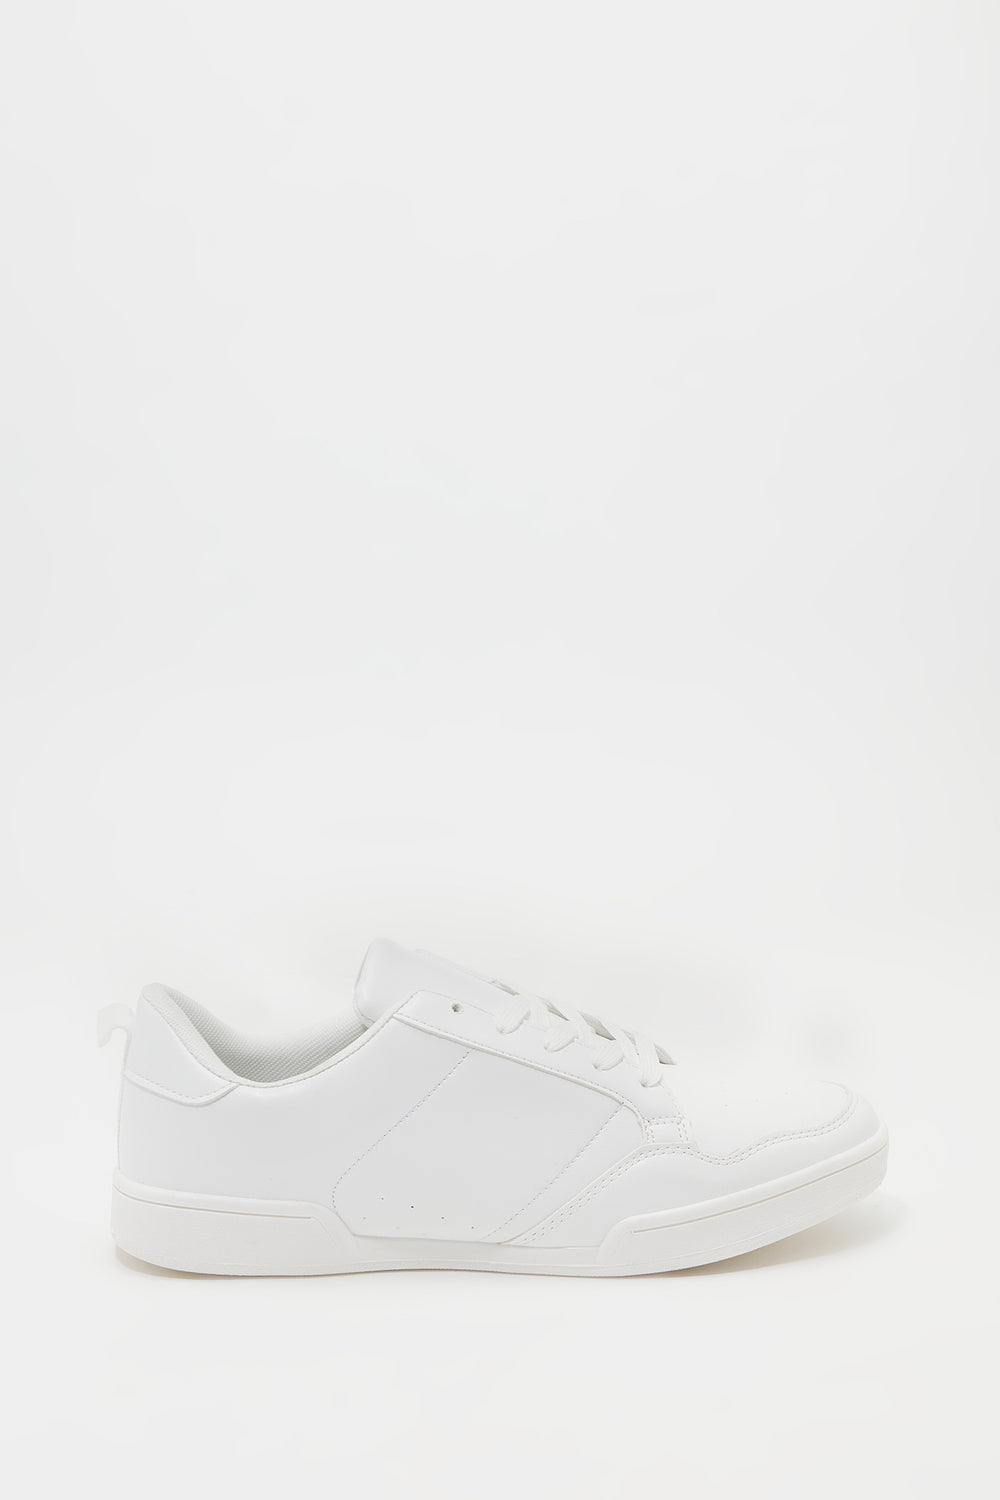 Basic Lace-Up Sneaker White